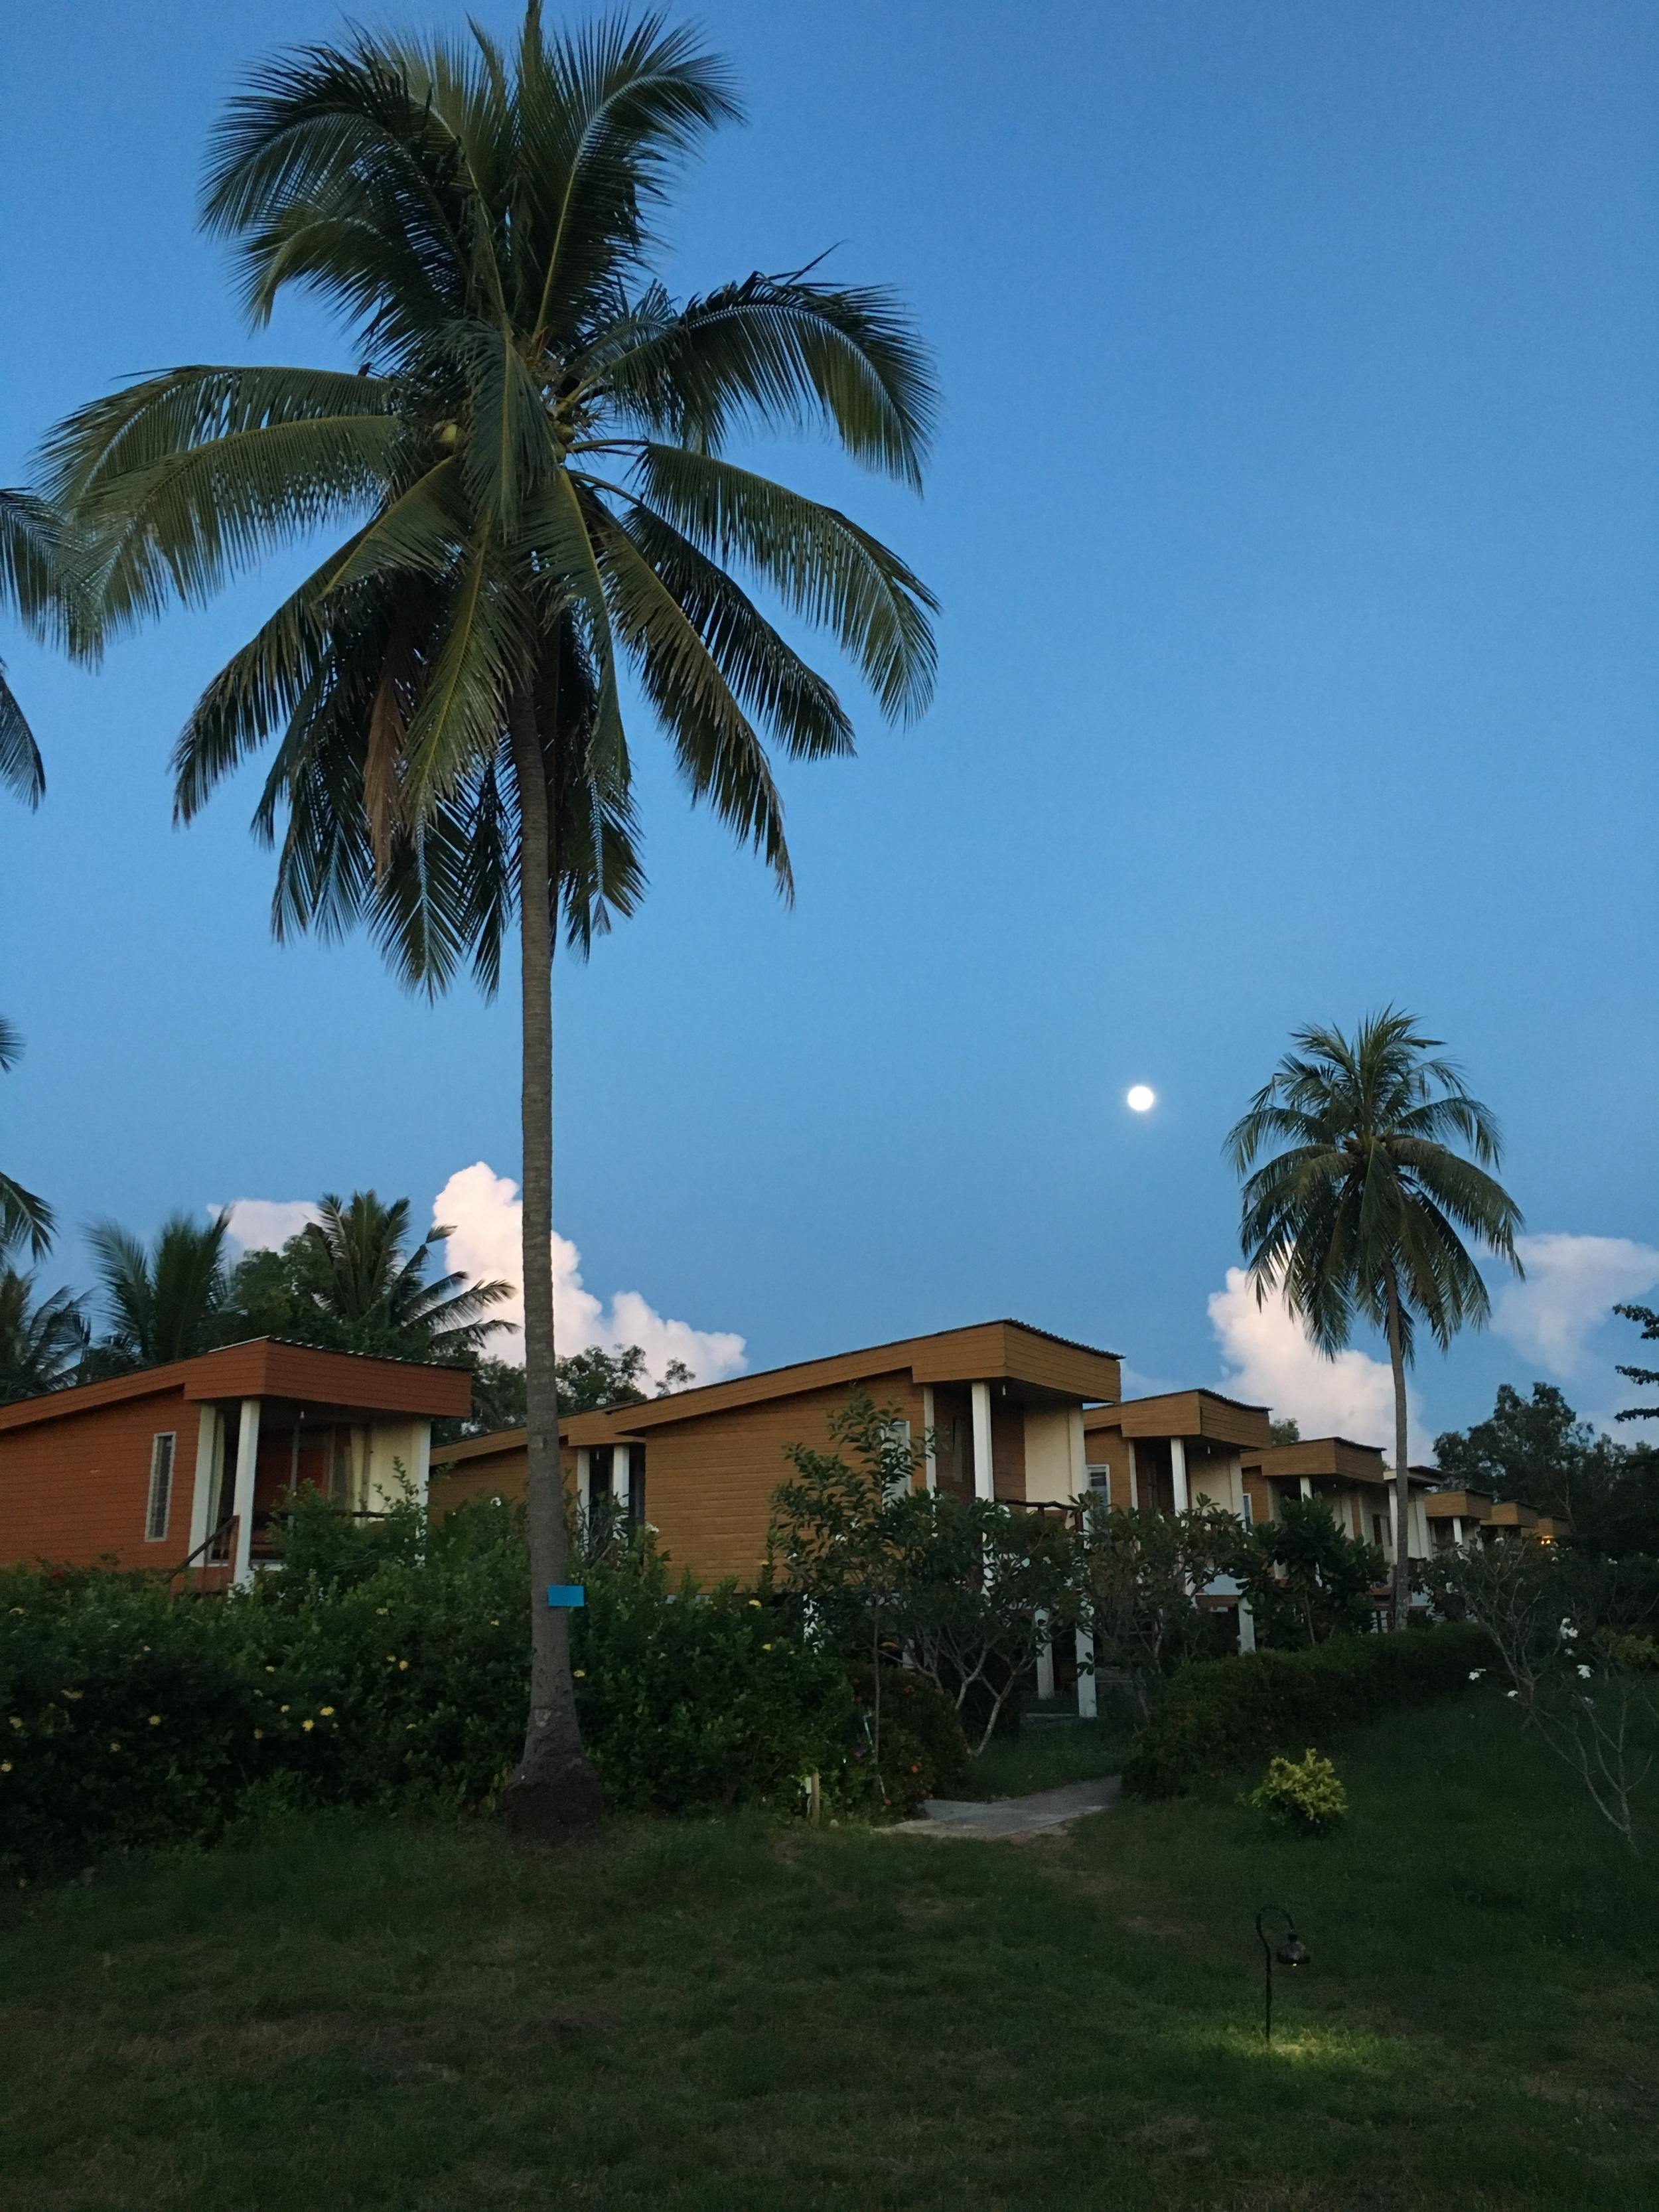 I moved into one of these bungalows.  Built on stilts, with wood plank flooring and no hot water, these bungalows provide a bit more rustic living. This picture was taking at dusk, with the moon rising in the east.